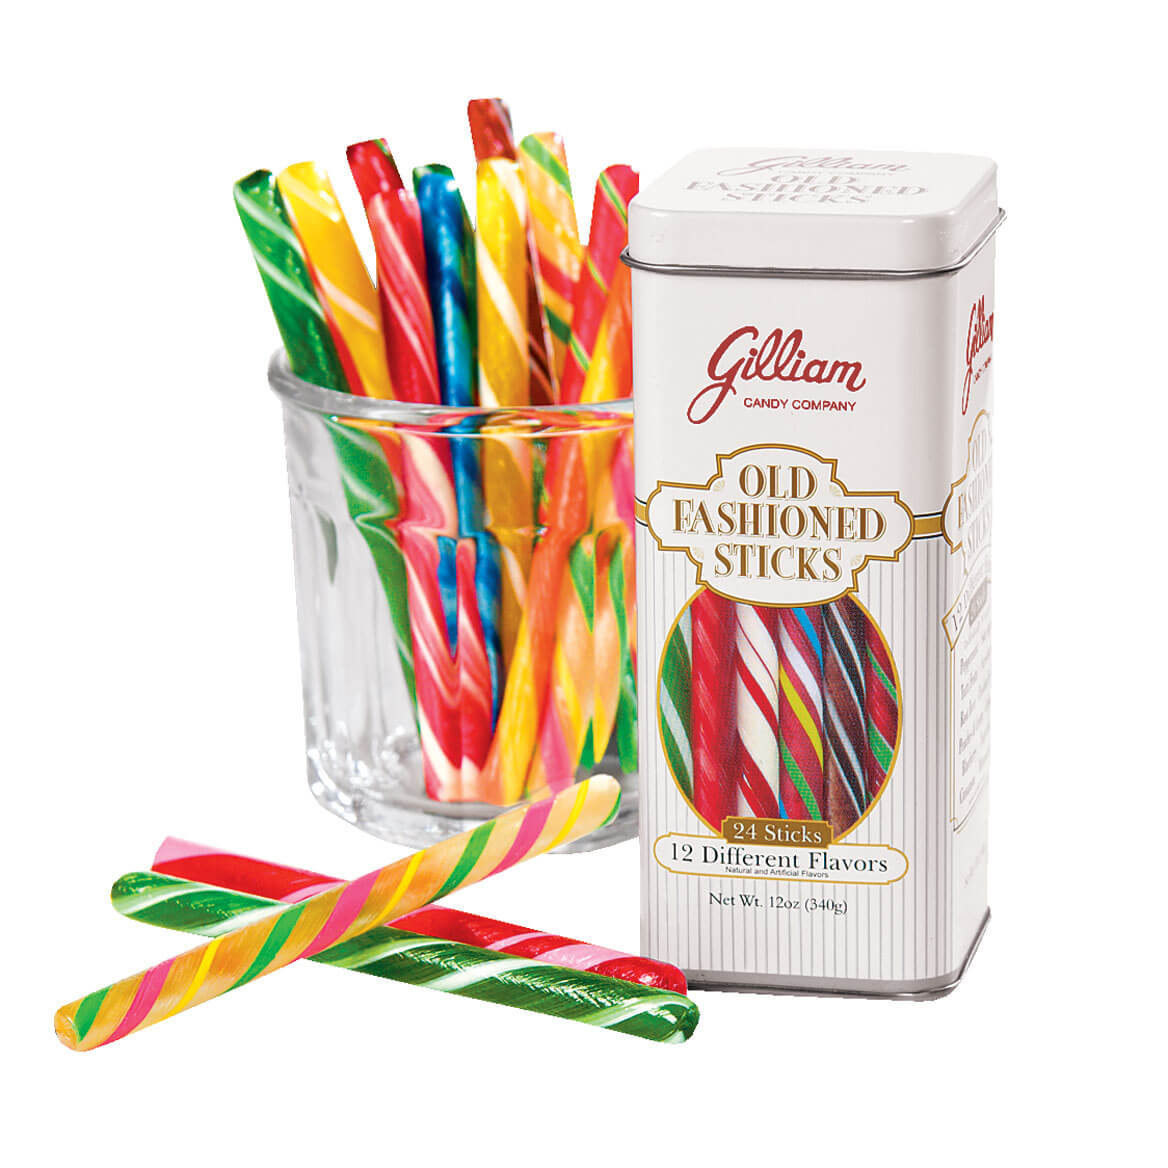 Old Fashioned Candy Sticks - Old Fashioned Stick Candy - Miles Kimball